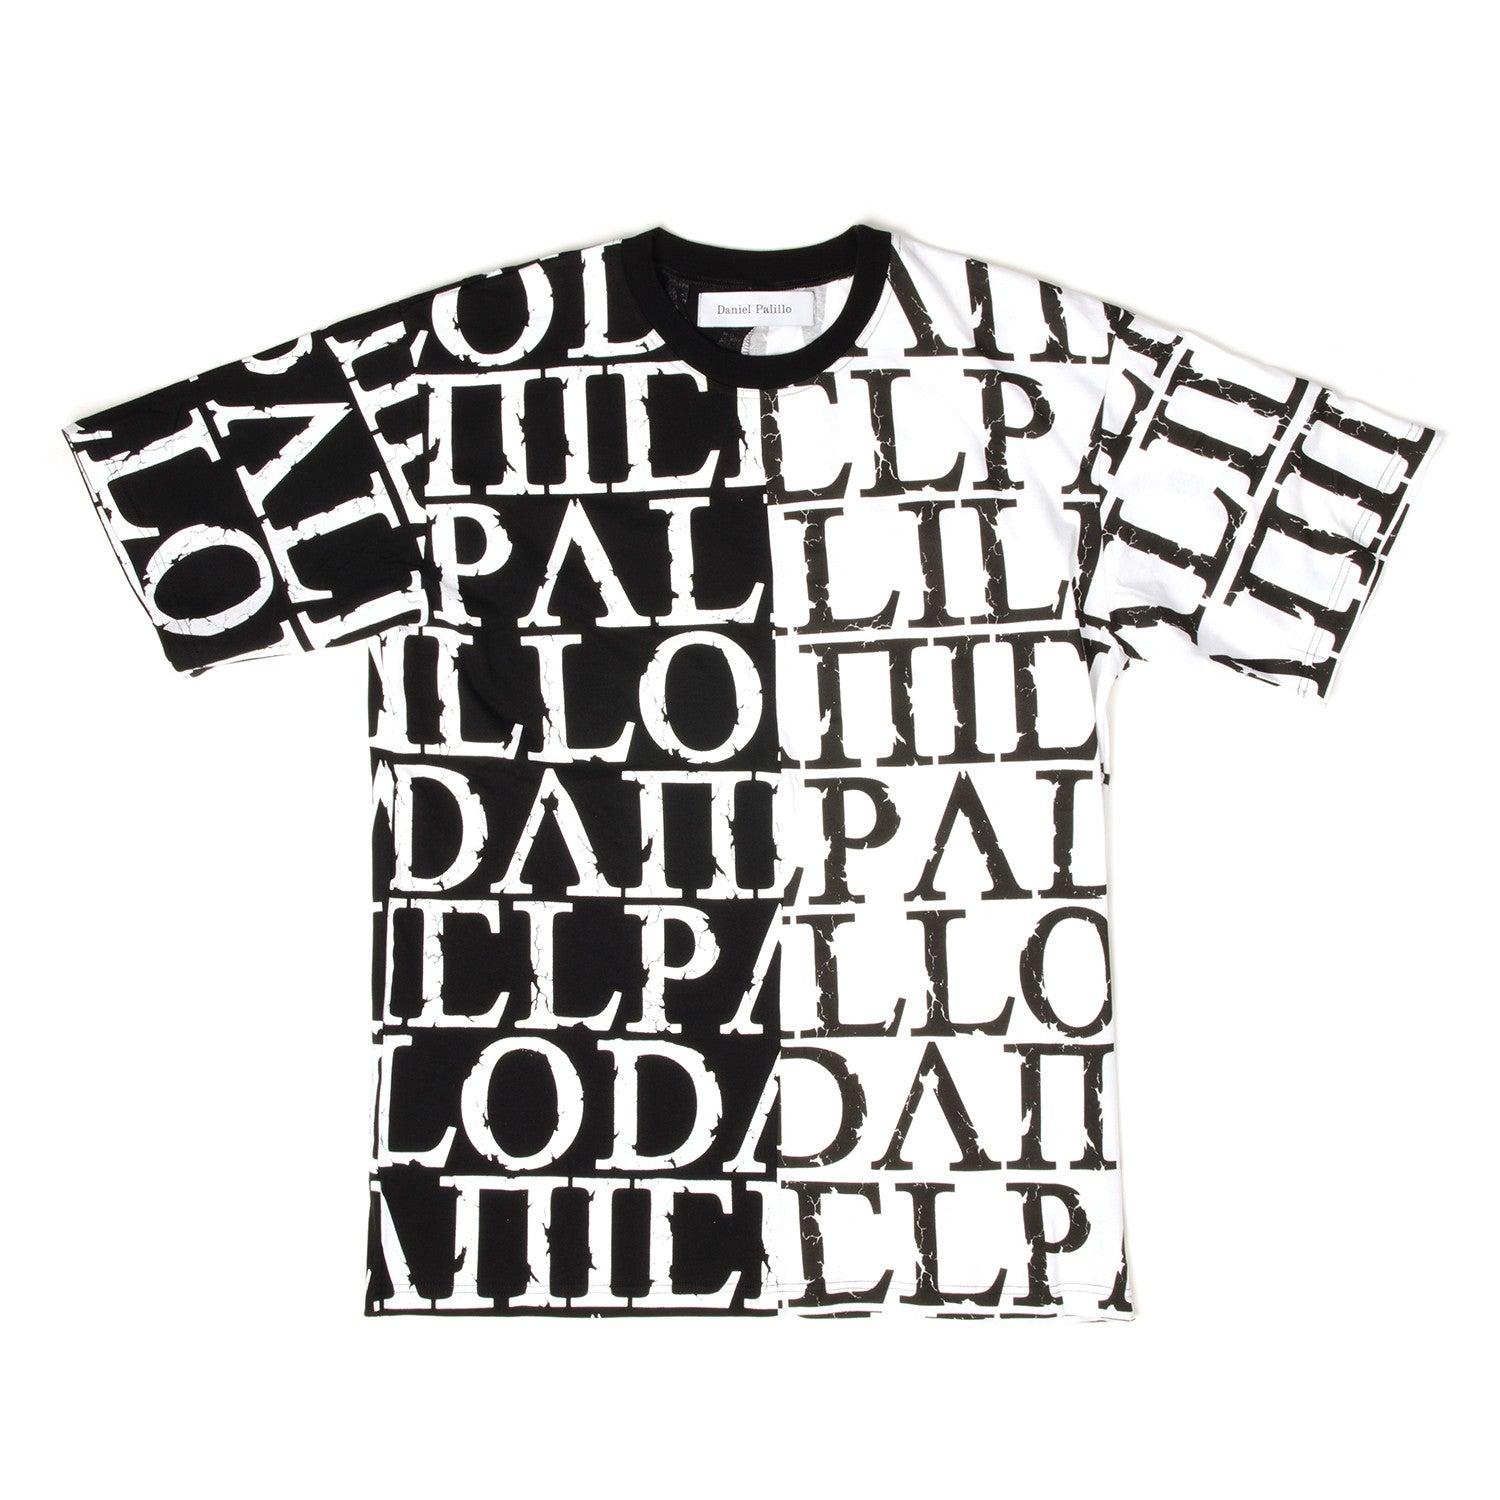 Daniel Palillo DP Print T-Shirt Black/White - Concrete